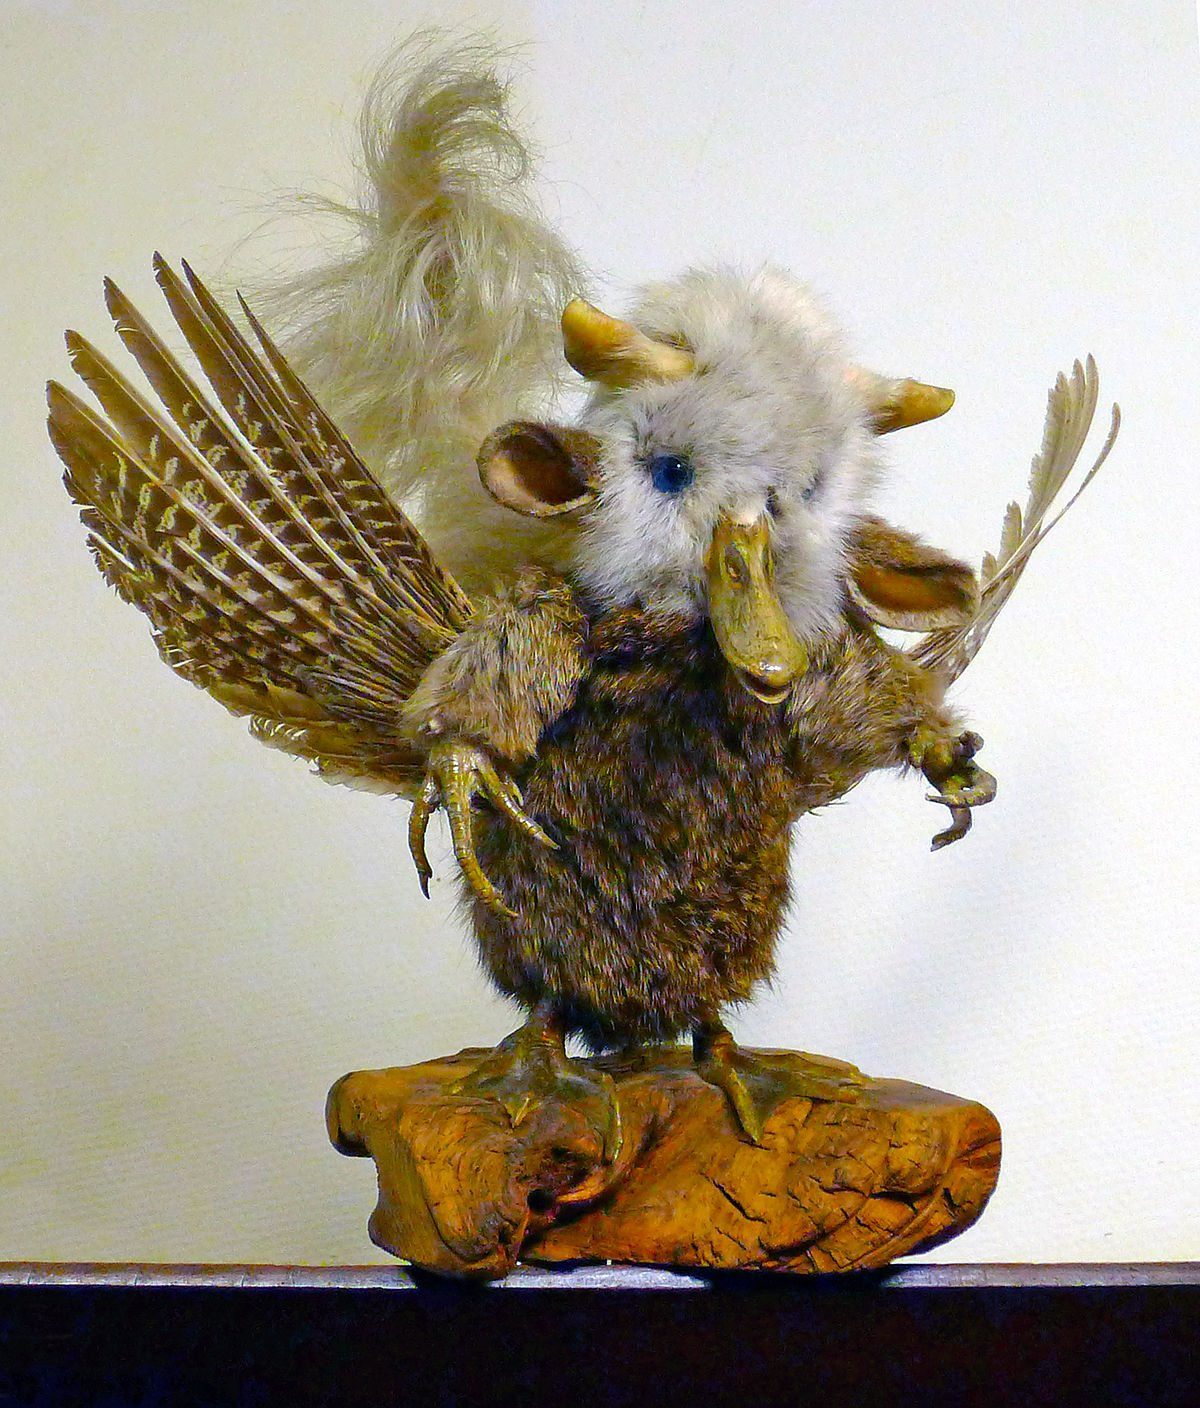 Wolpertinger Wikipedia